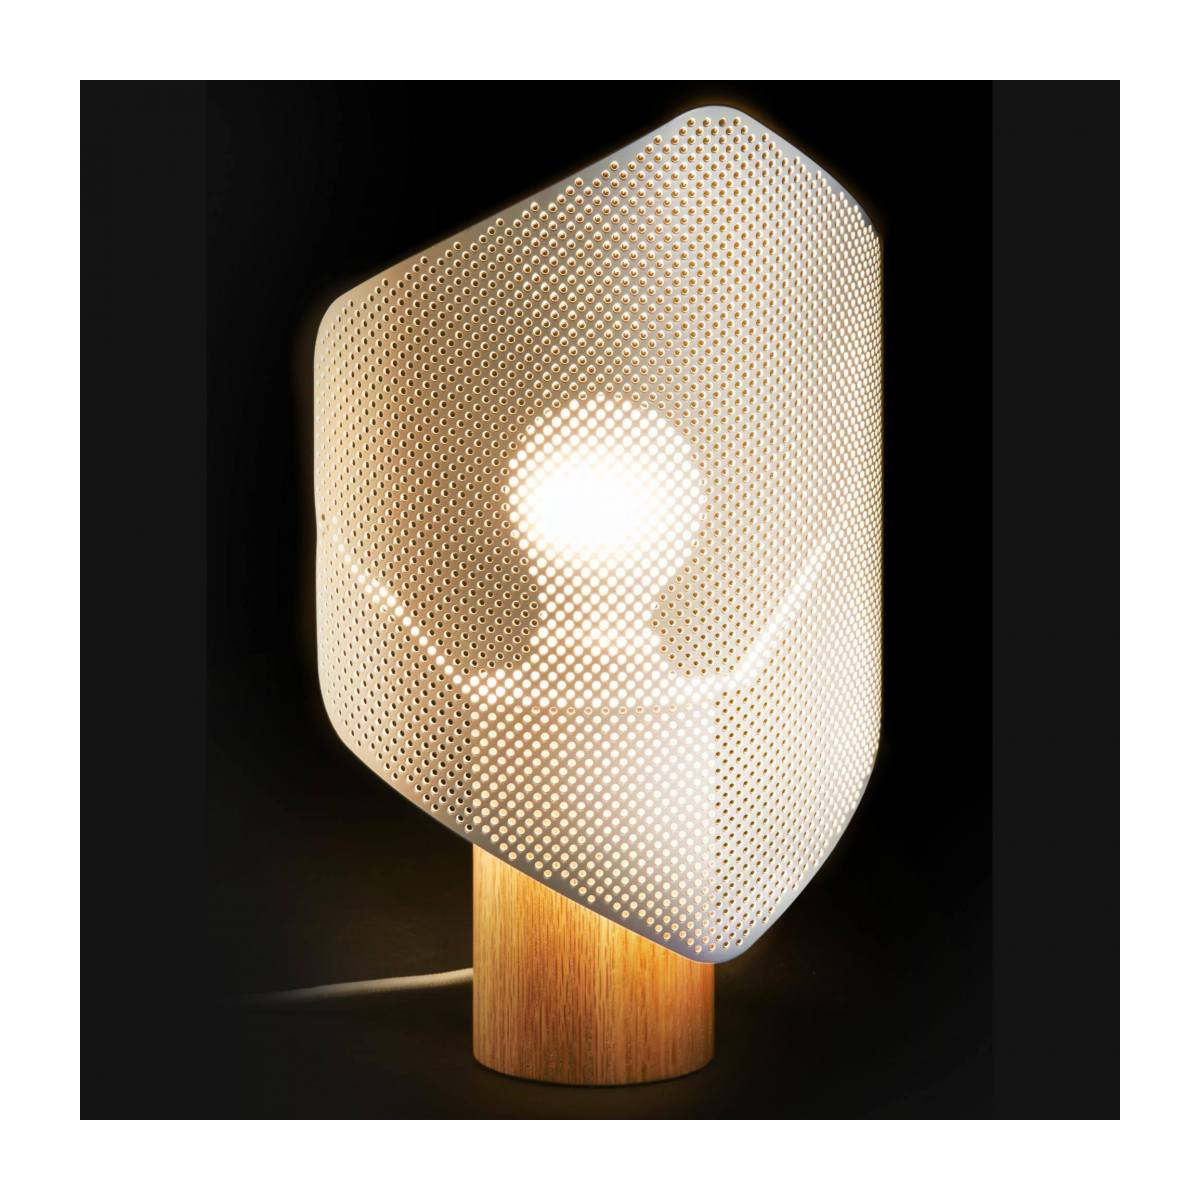 Lampe de table blanche n°2